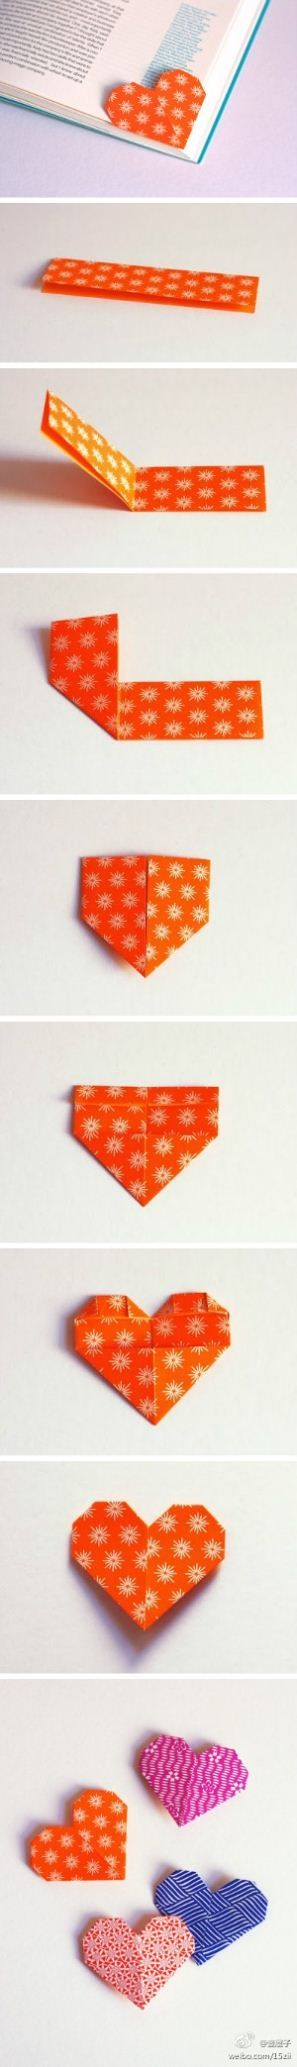 Origami Bookmark. Cute and easy to do. :-) Bianca@itti